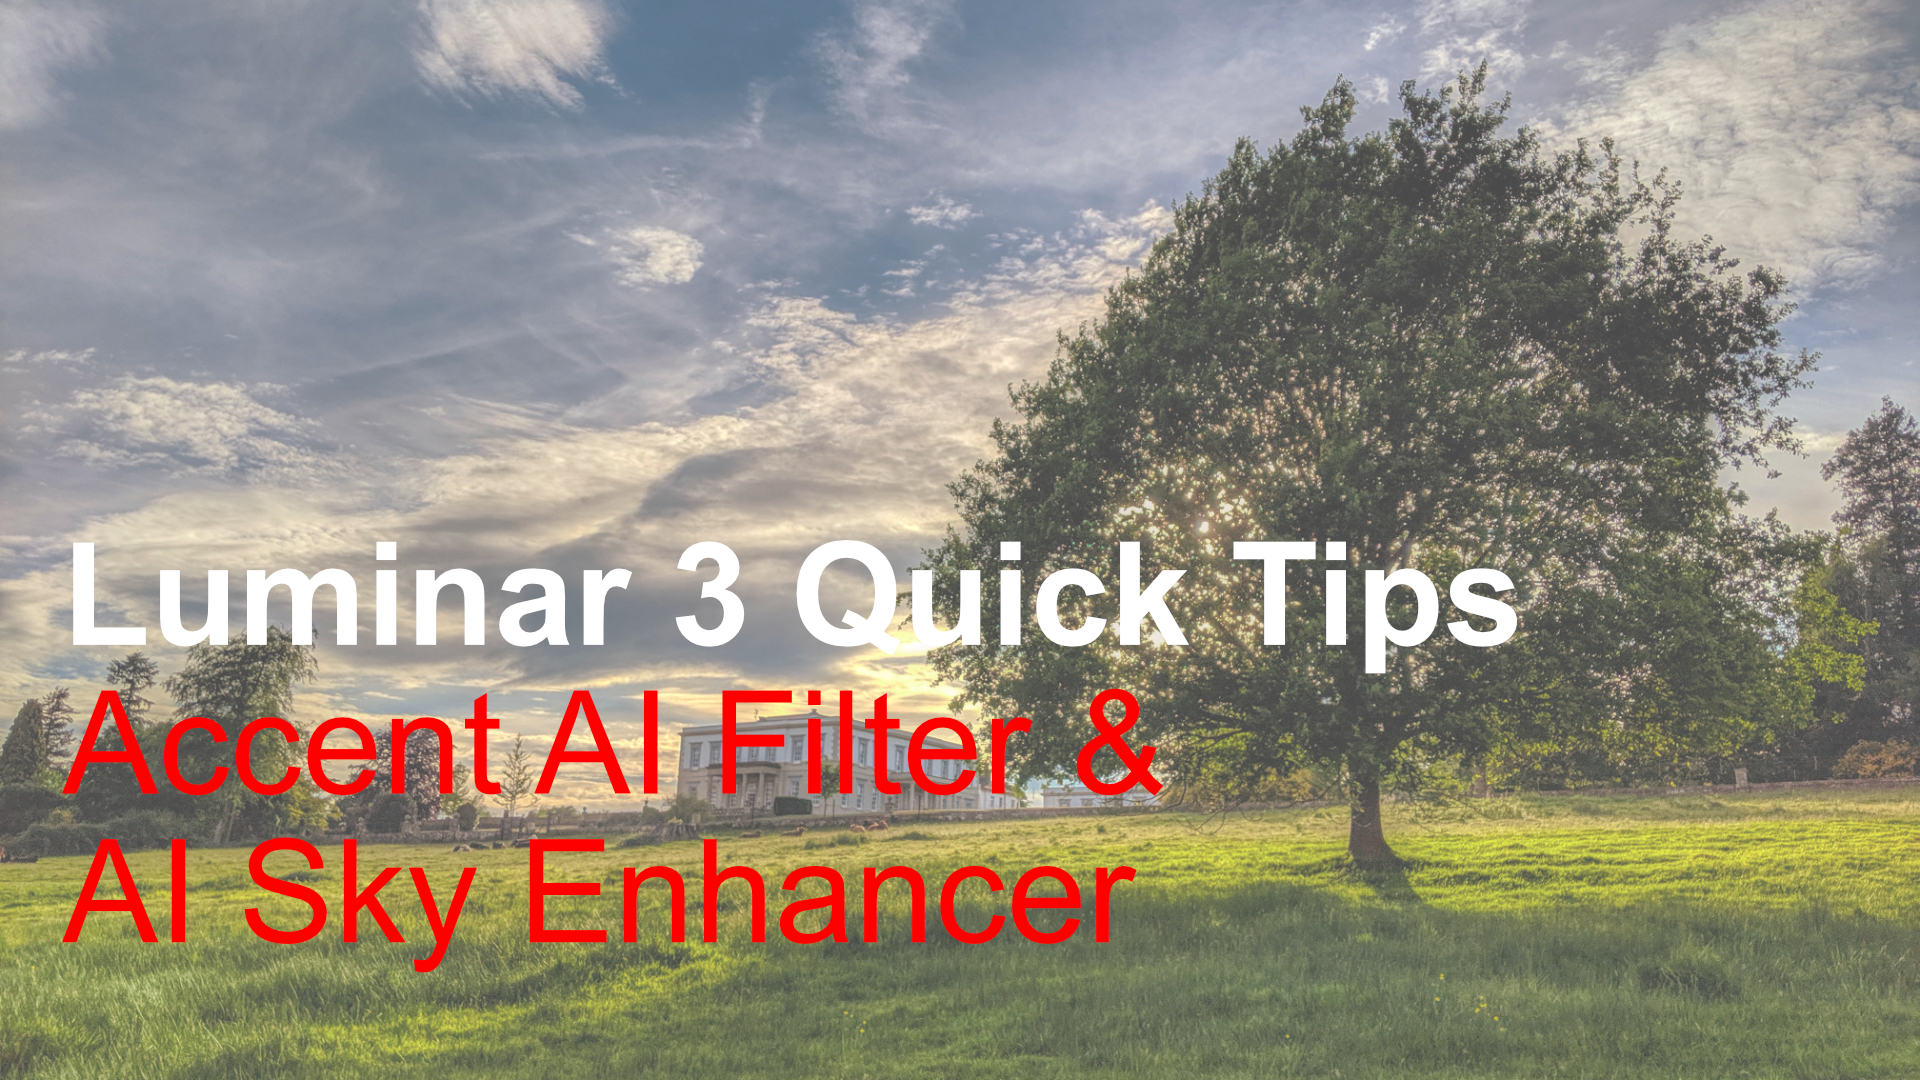 Luminar 3 Quick Tips | Accent AI Filter & AI Sky Enhancer